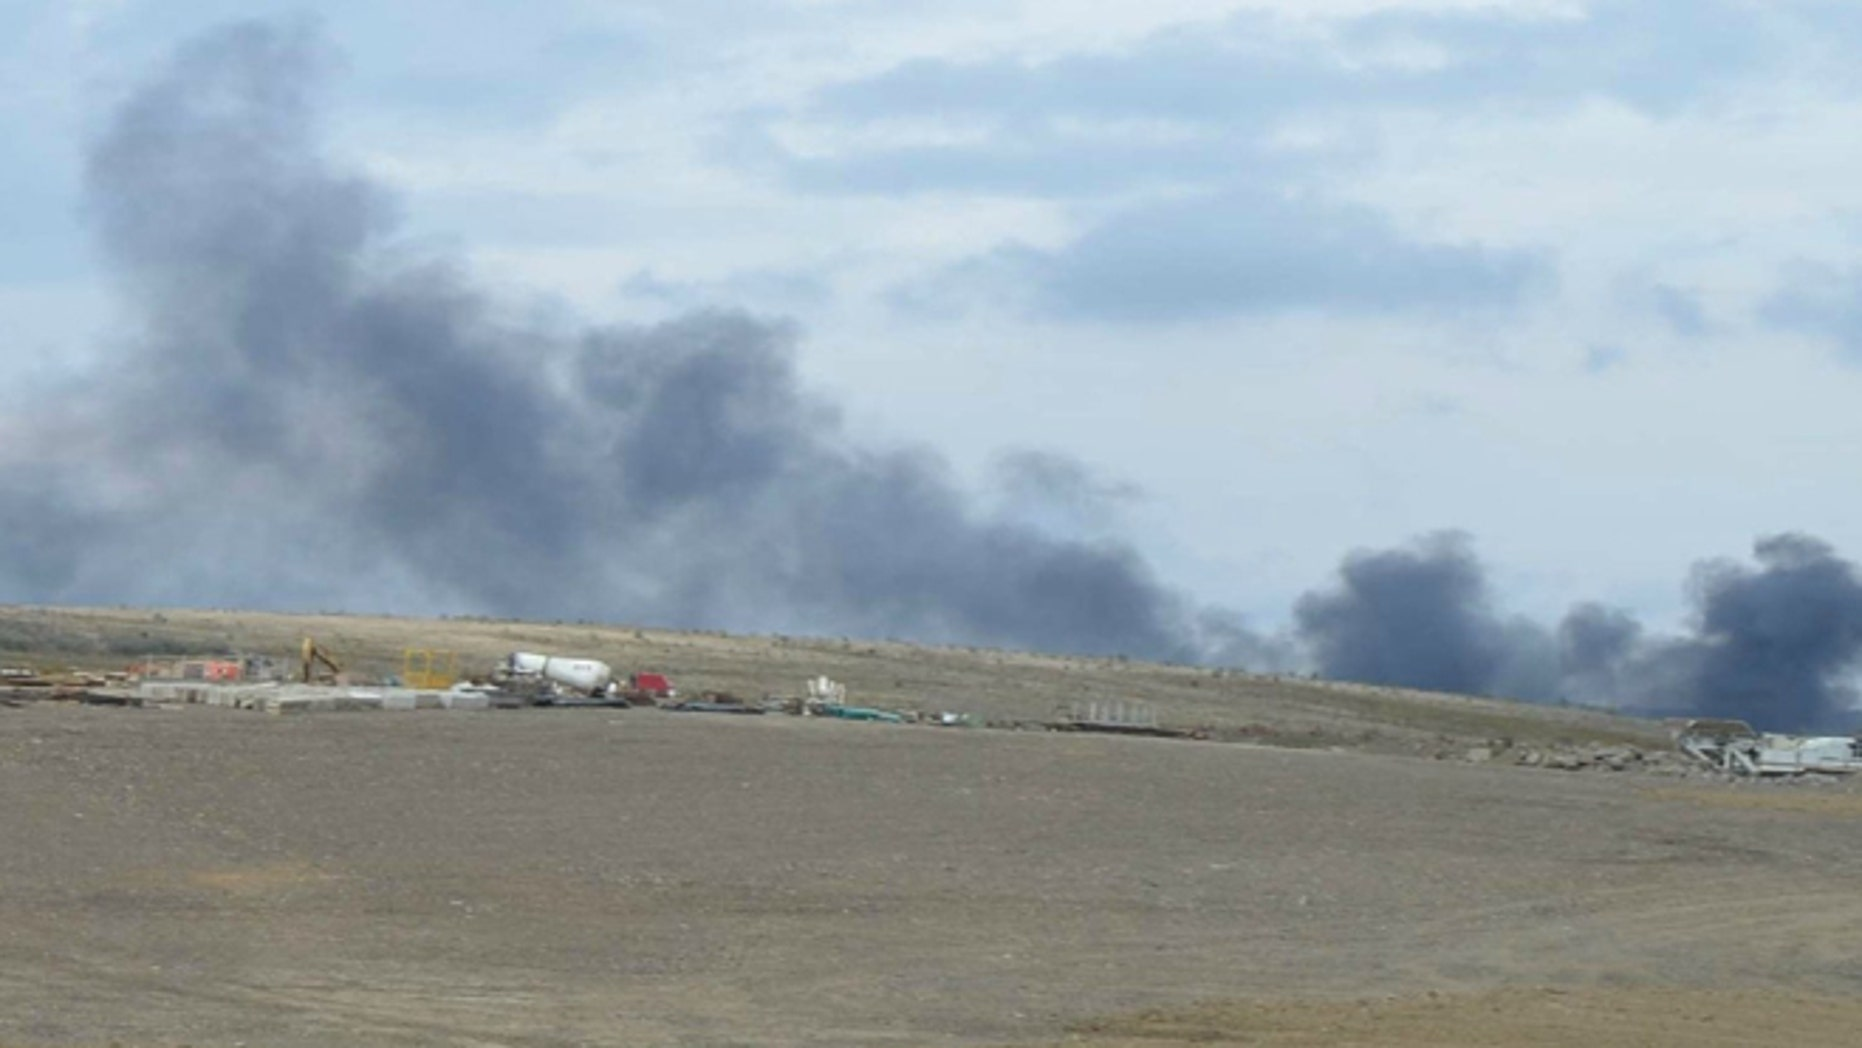 A fire began about 3 p.m. and grew to include both the Flight 93 park office and park headquarters, according to a Somerset County emergency dispatcher. (AP/National Park Foundation)